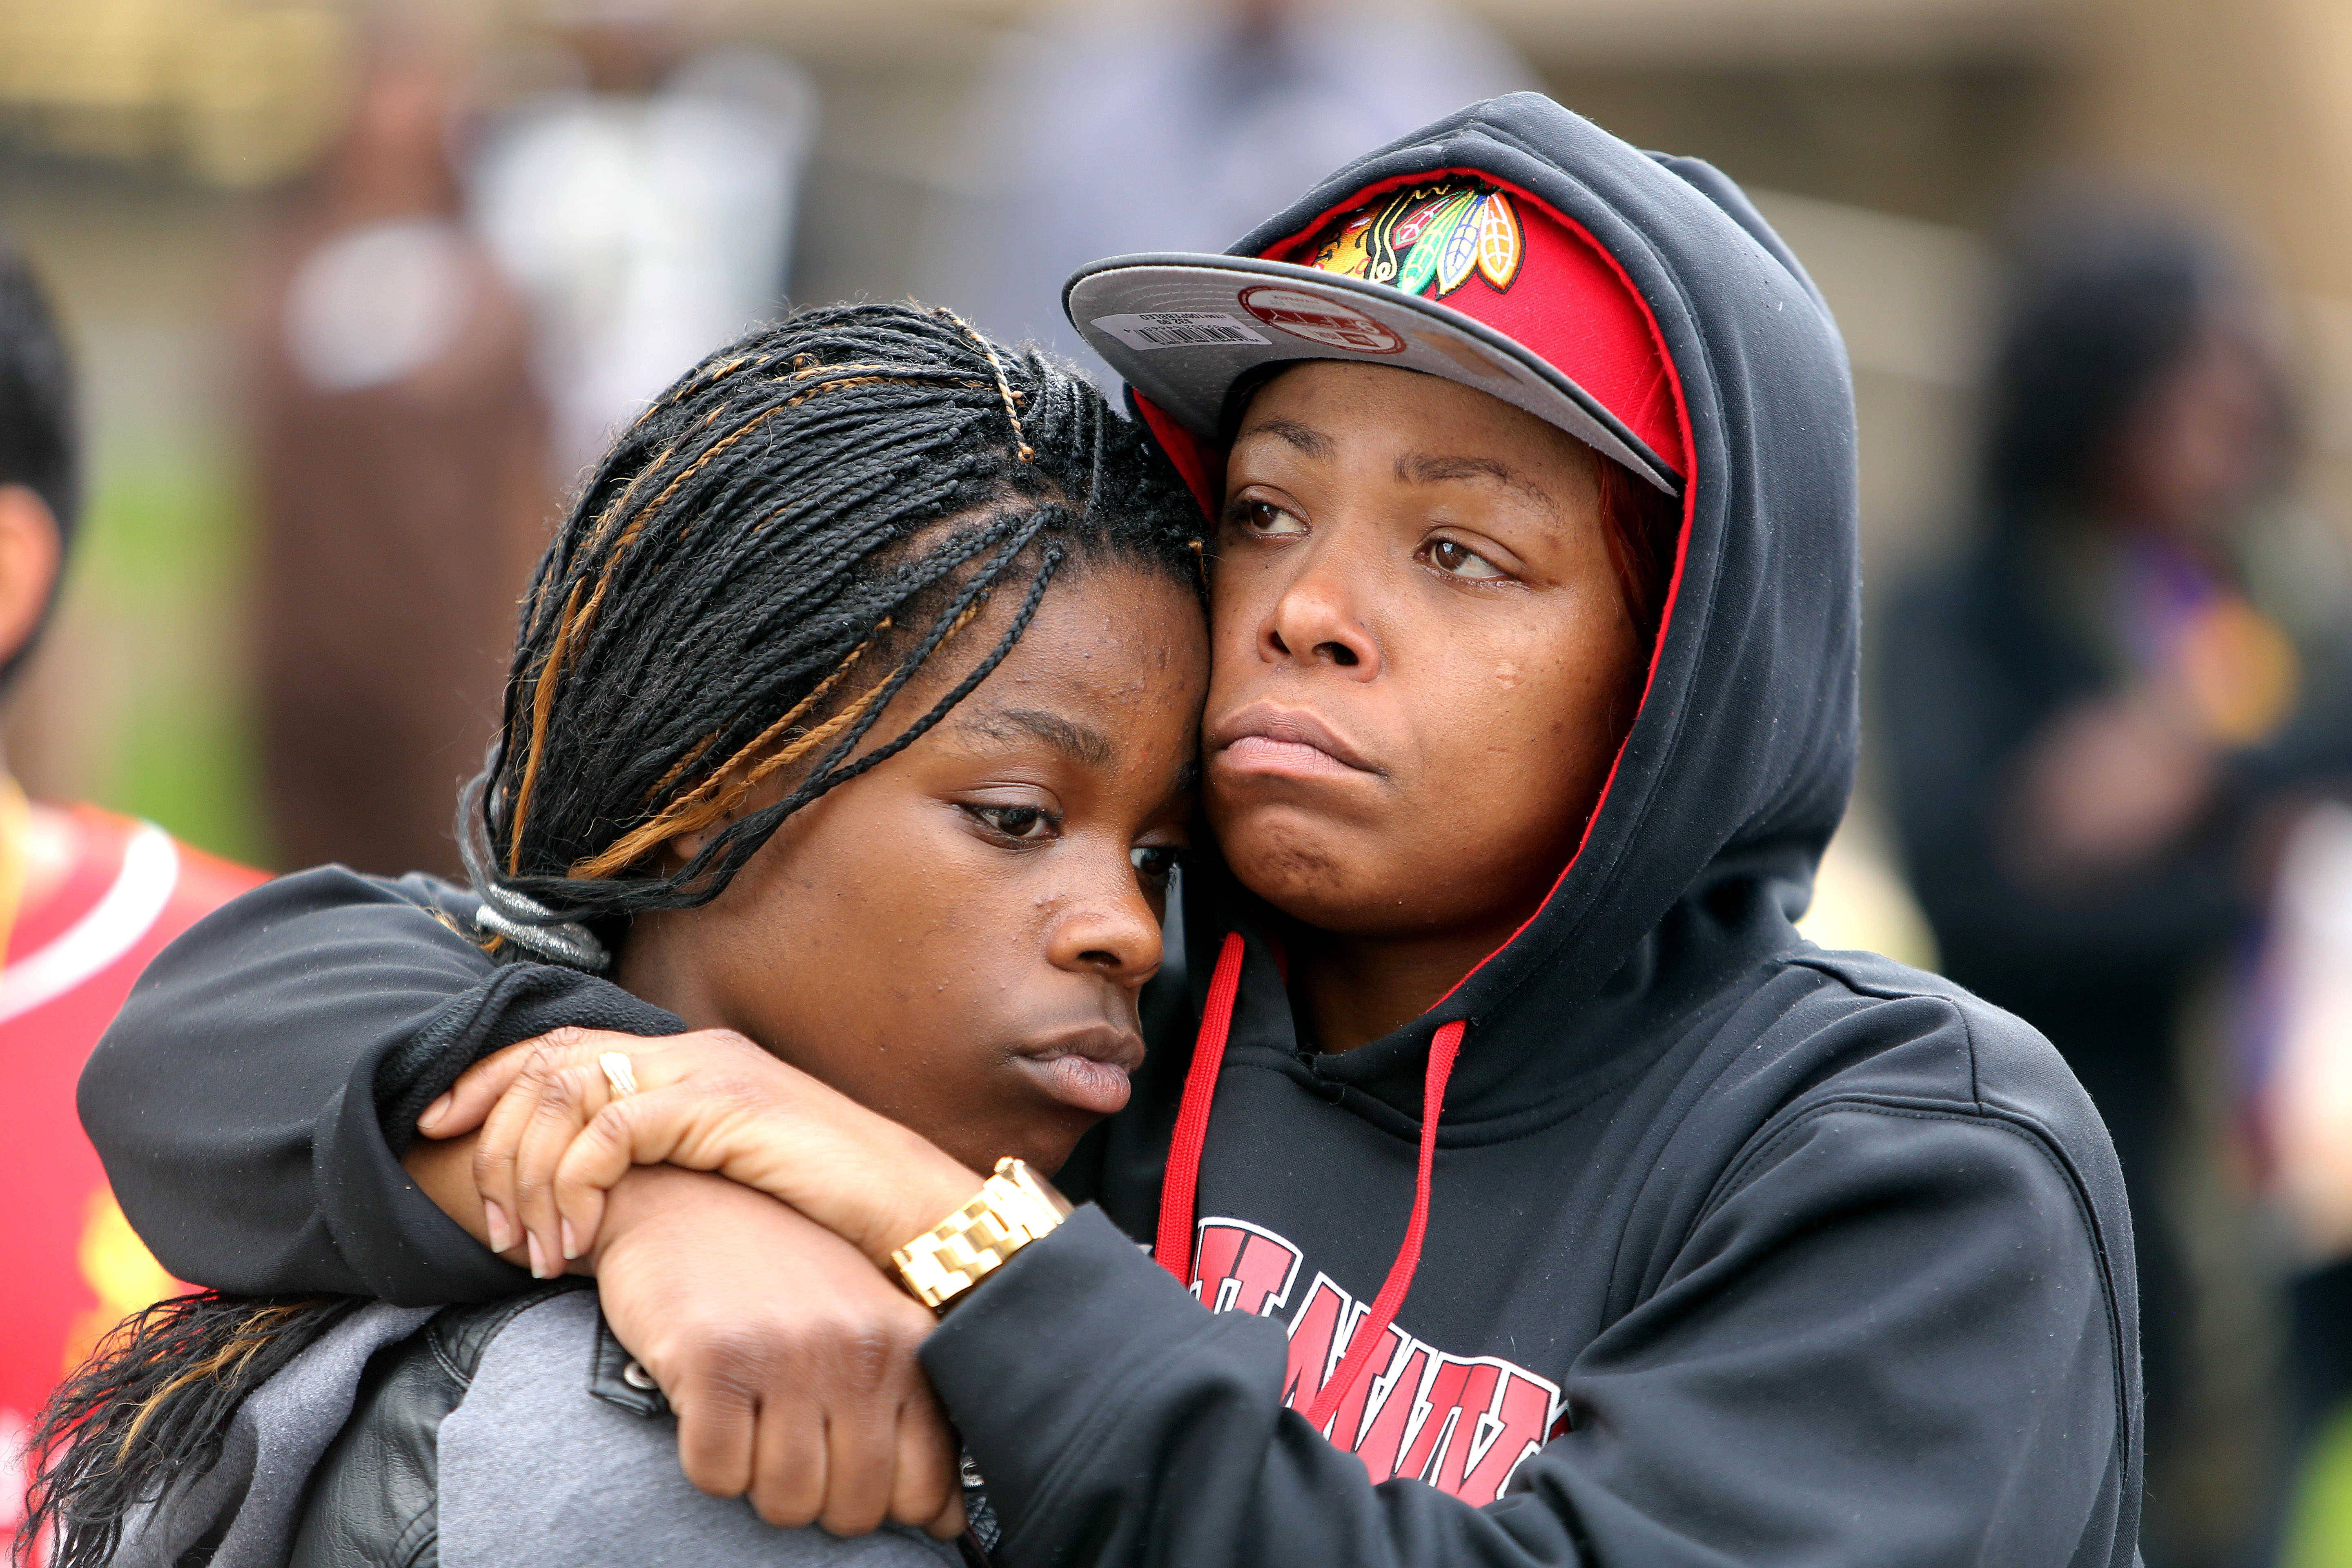 LaToya Howell of Waukegan, right, hugs her 12-year-old daughter Jayla as people protest State's Attorney Michael Nerheim's decision that a Zion police officer was justified in fatally shooting teenager Justus Howell last month.